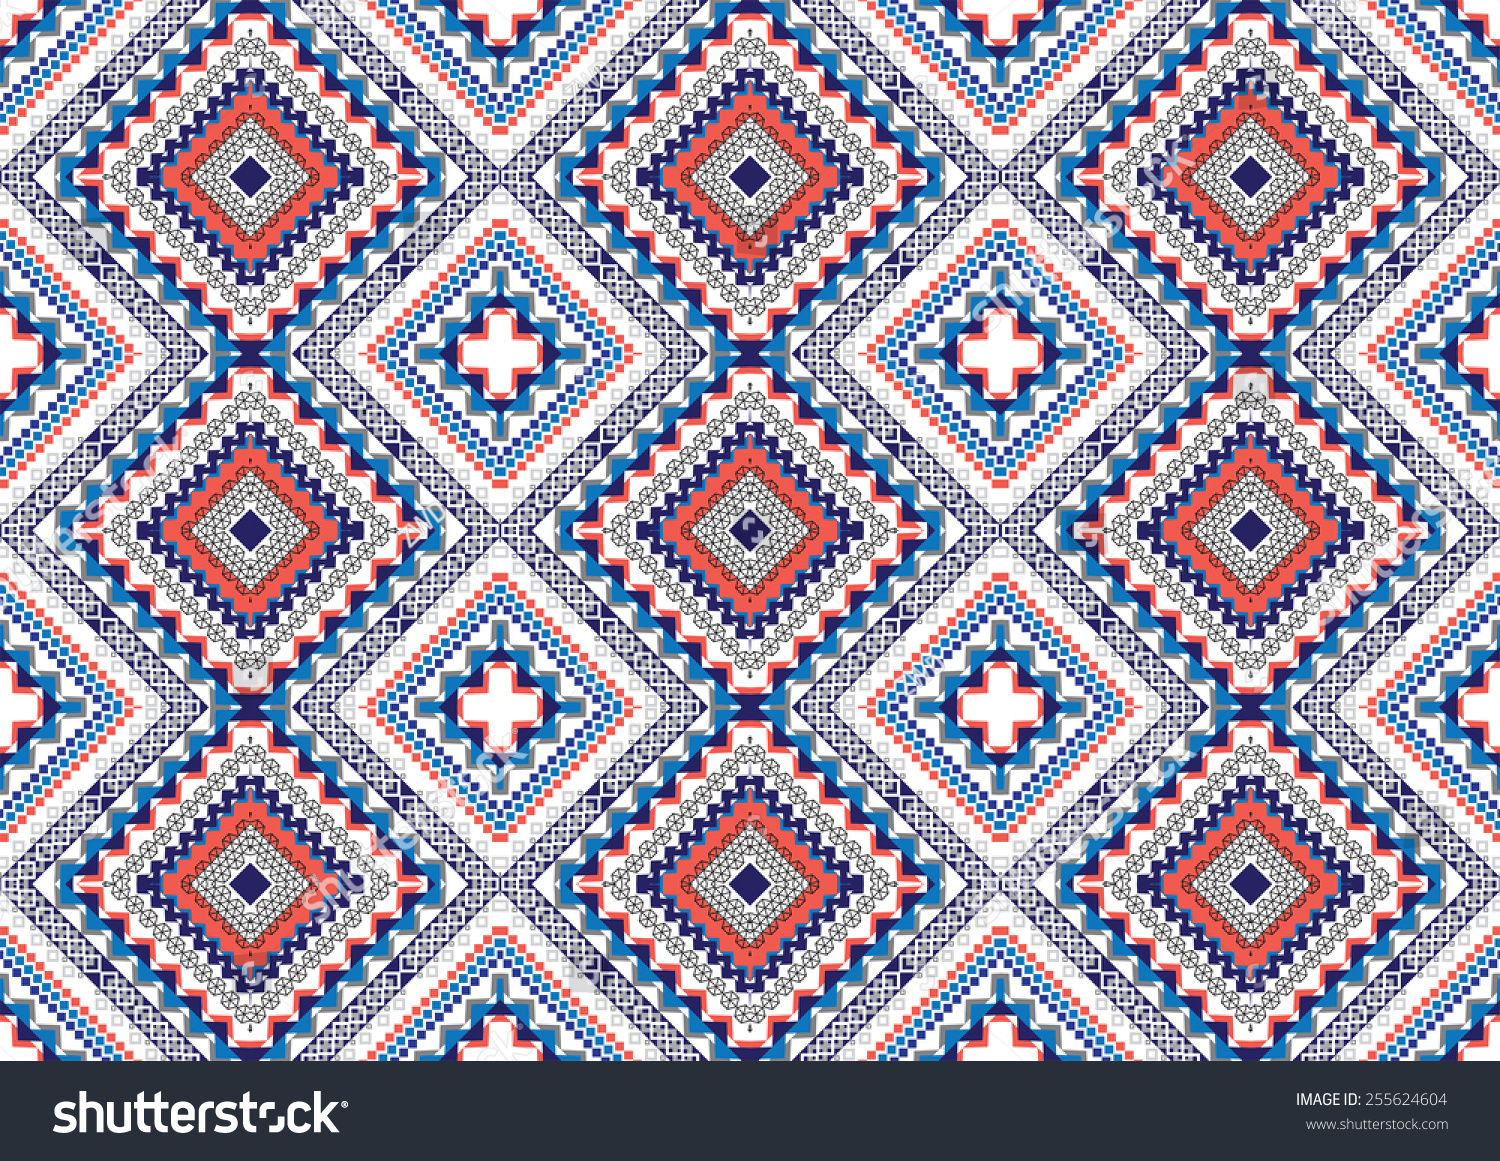 Abstract Ethnic Geometric Patterns Colorful Design Stock